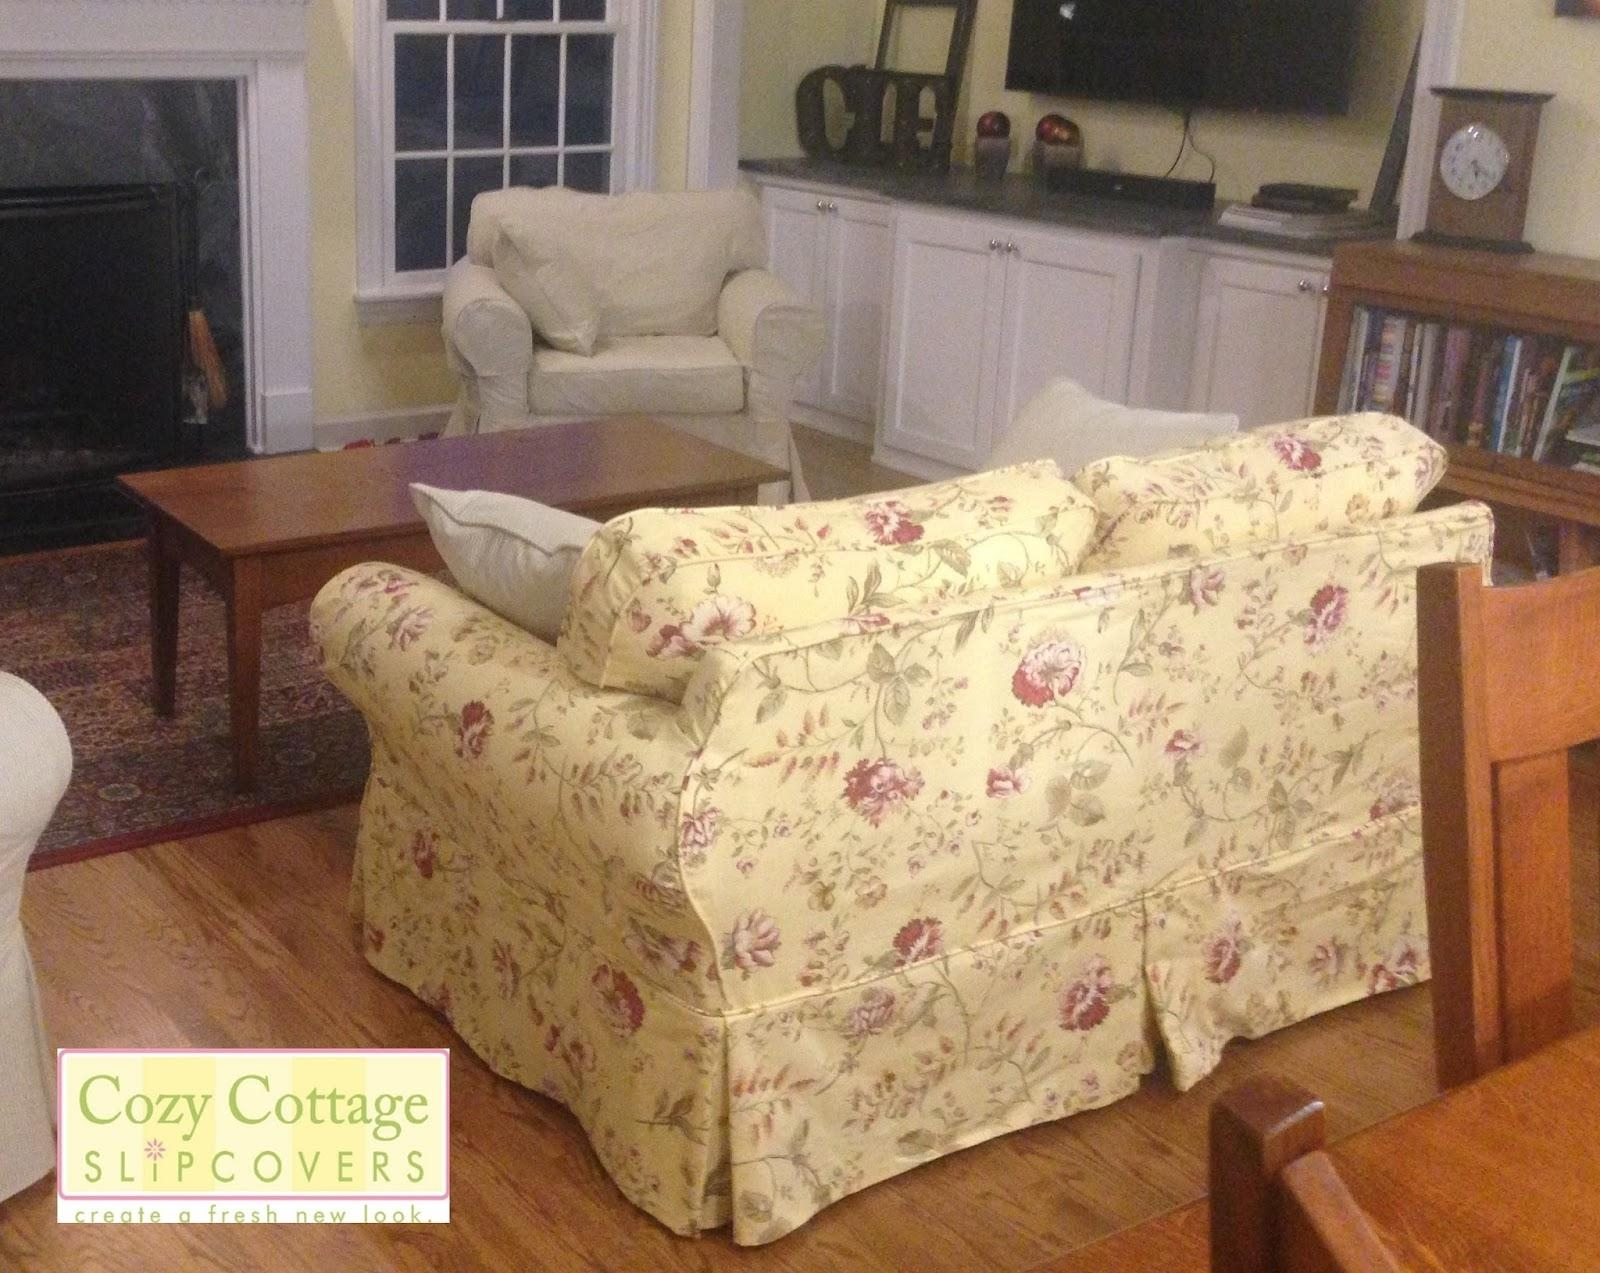 Cozy Cottage Slipcovers: Fresh Floral Slipcovers Throughout Floral Slipcovers (View 10 of 20)